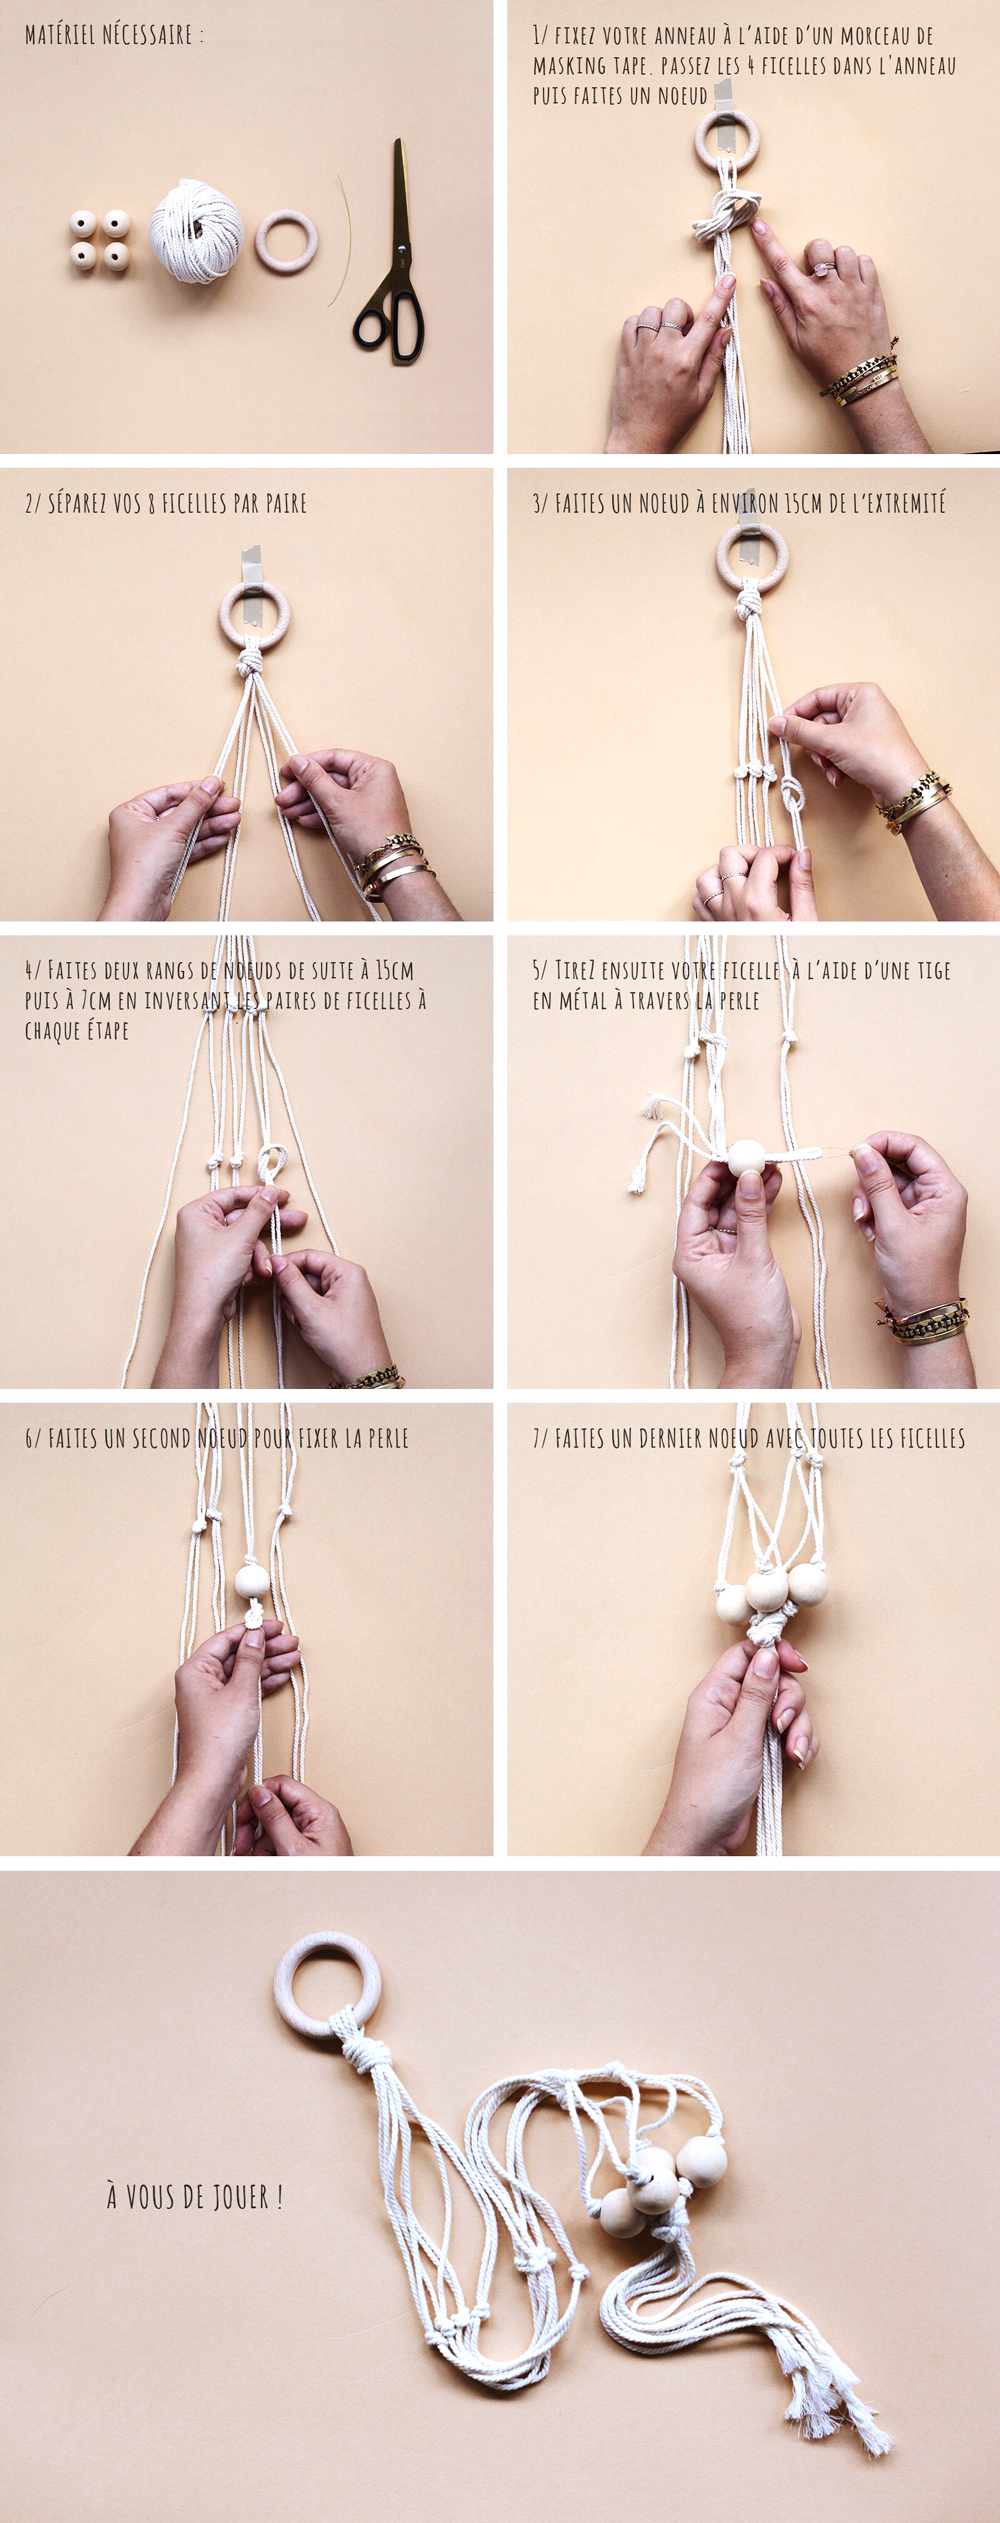 DIY-suspension-macrame-plante-etapes